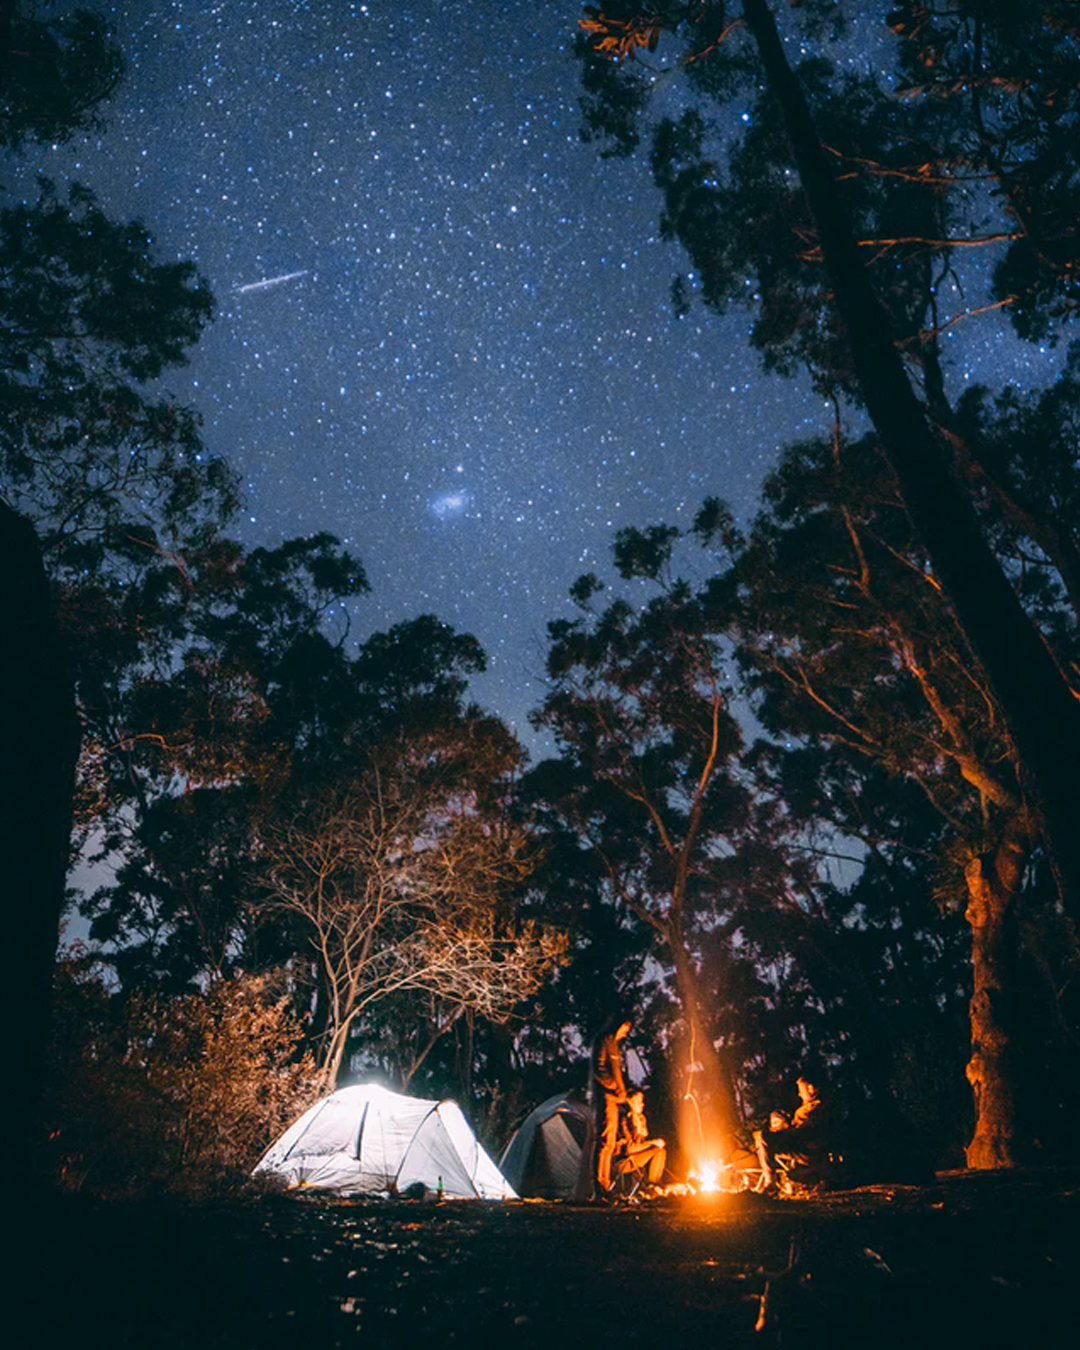 campsite within pine forest on a starry night